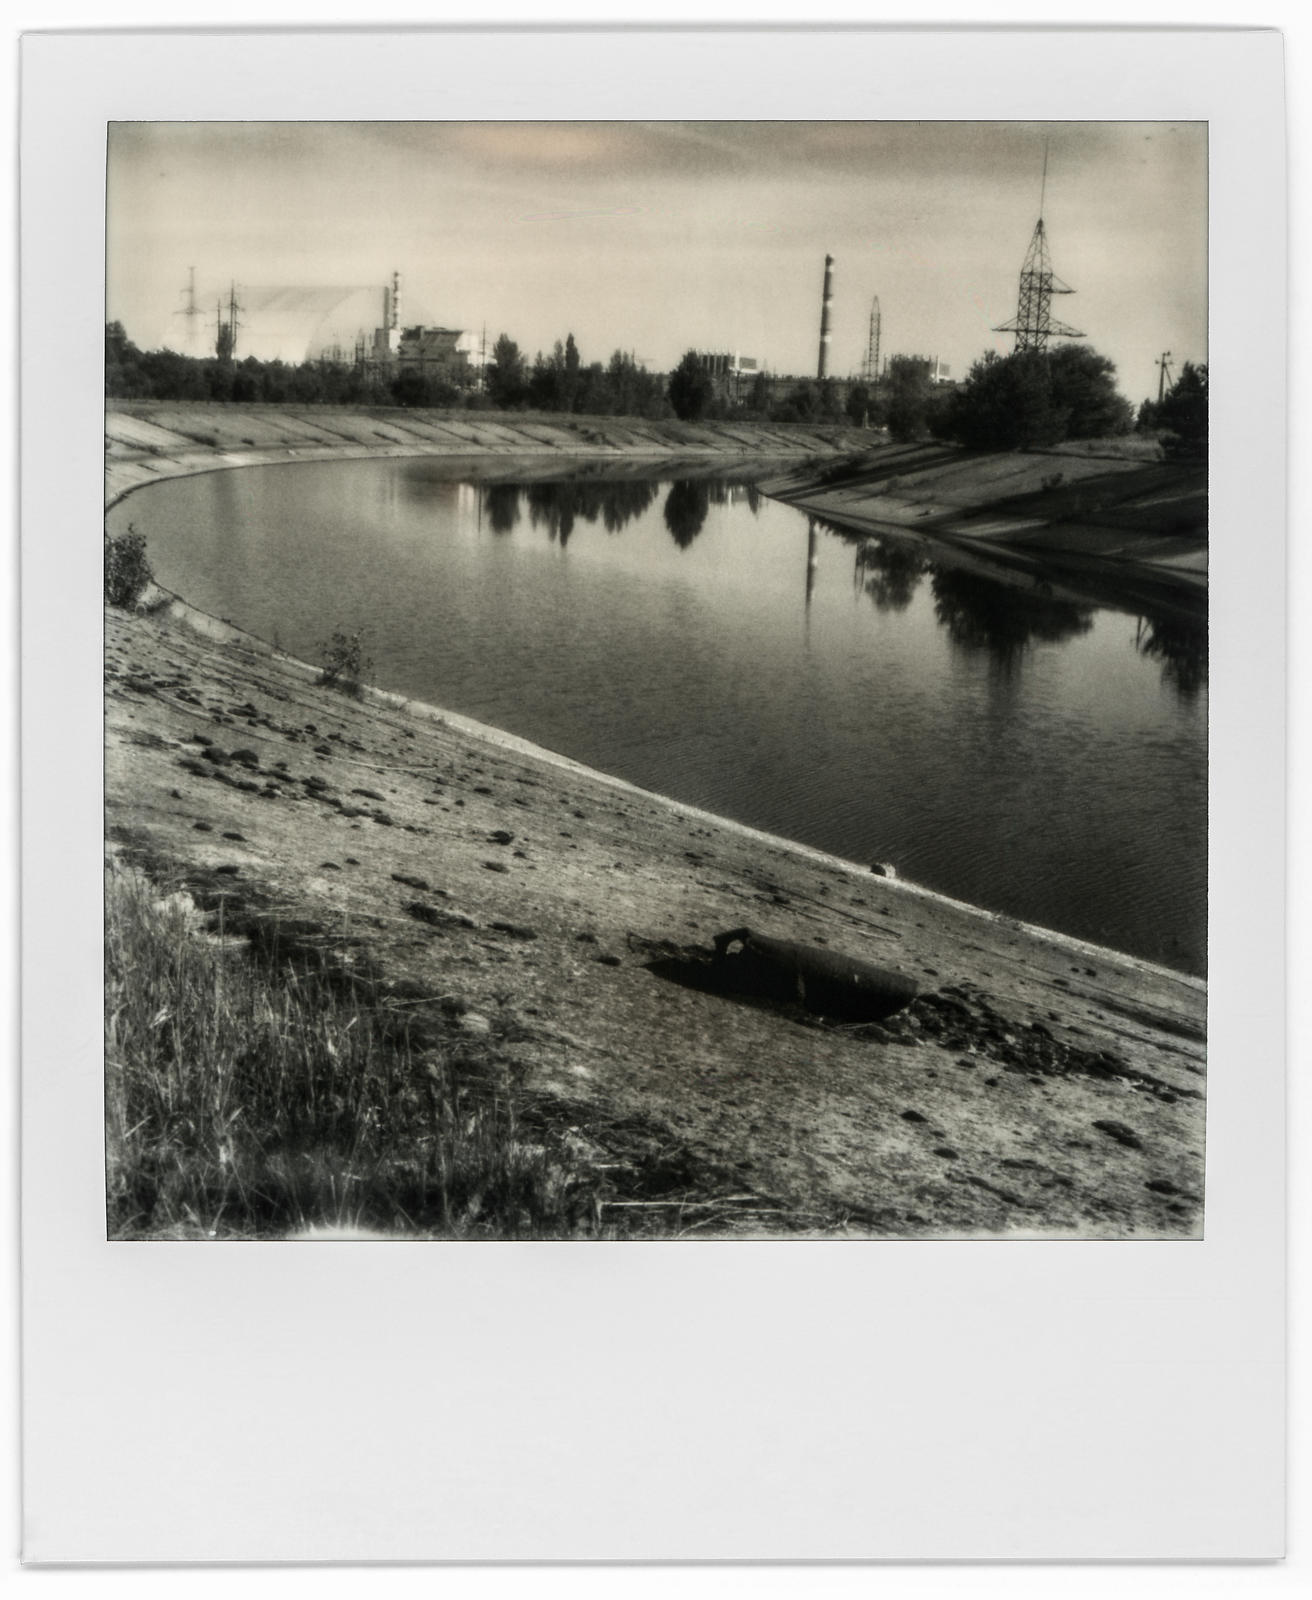 photo-polaroid-tchernobyl-chernobyl-31